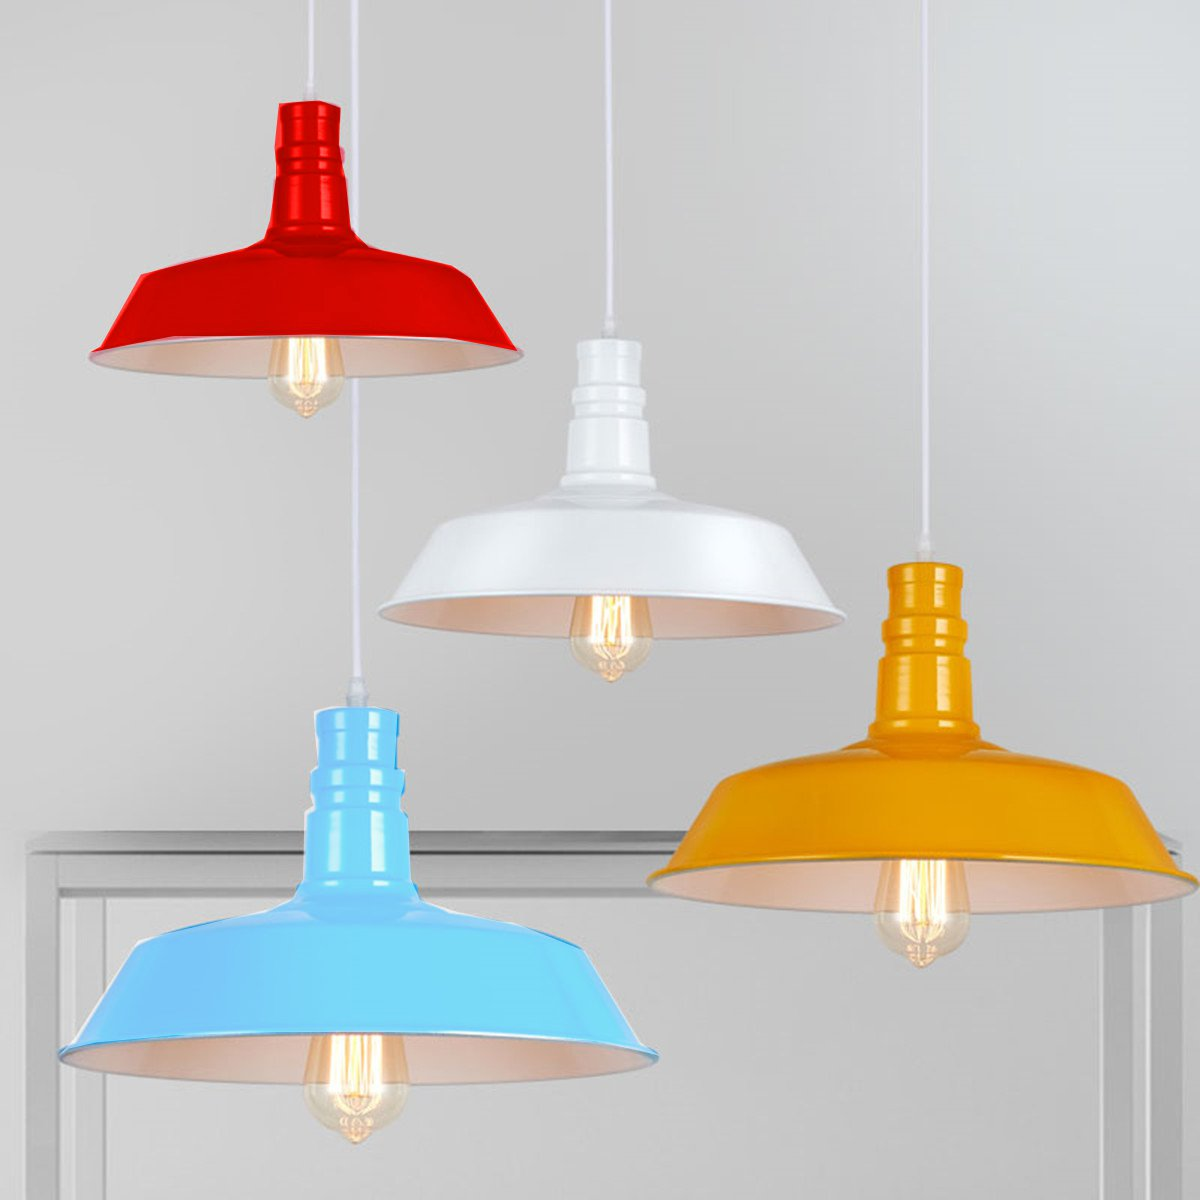 Modern Vintage Retro 36cm Iron Metal Lamp Fixture Pendant Light Lampshade Bar Coffee Shop Kitchen Fitting Lamp Cover<br>